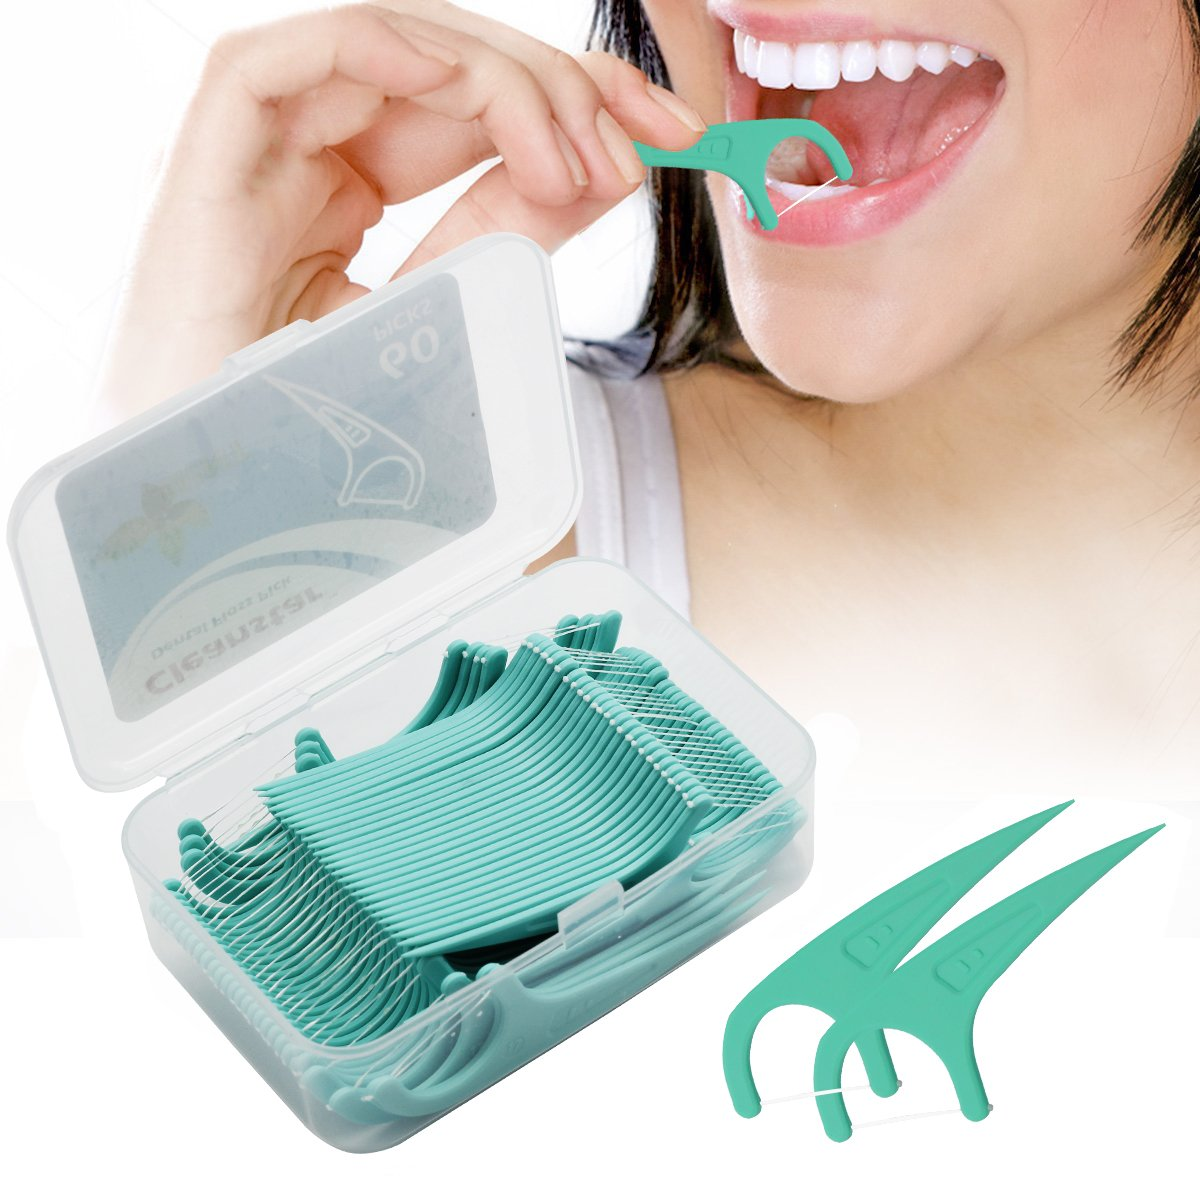 Hilo Dental, Nuobk 180 Pieza Dental Floss Seda de dientes, Disposable Cuidado de dientes Interdental Oral Limpieza Flossers: Amazon.es: Salud y cuidado ...